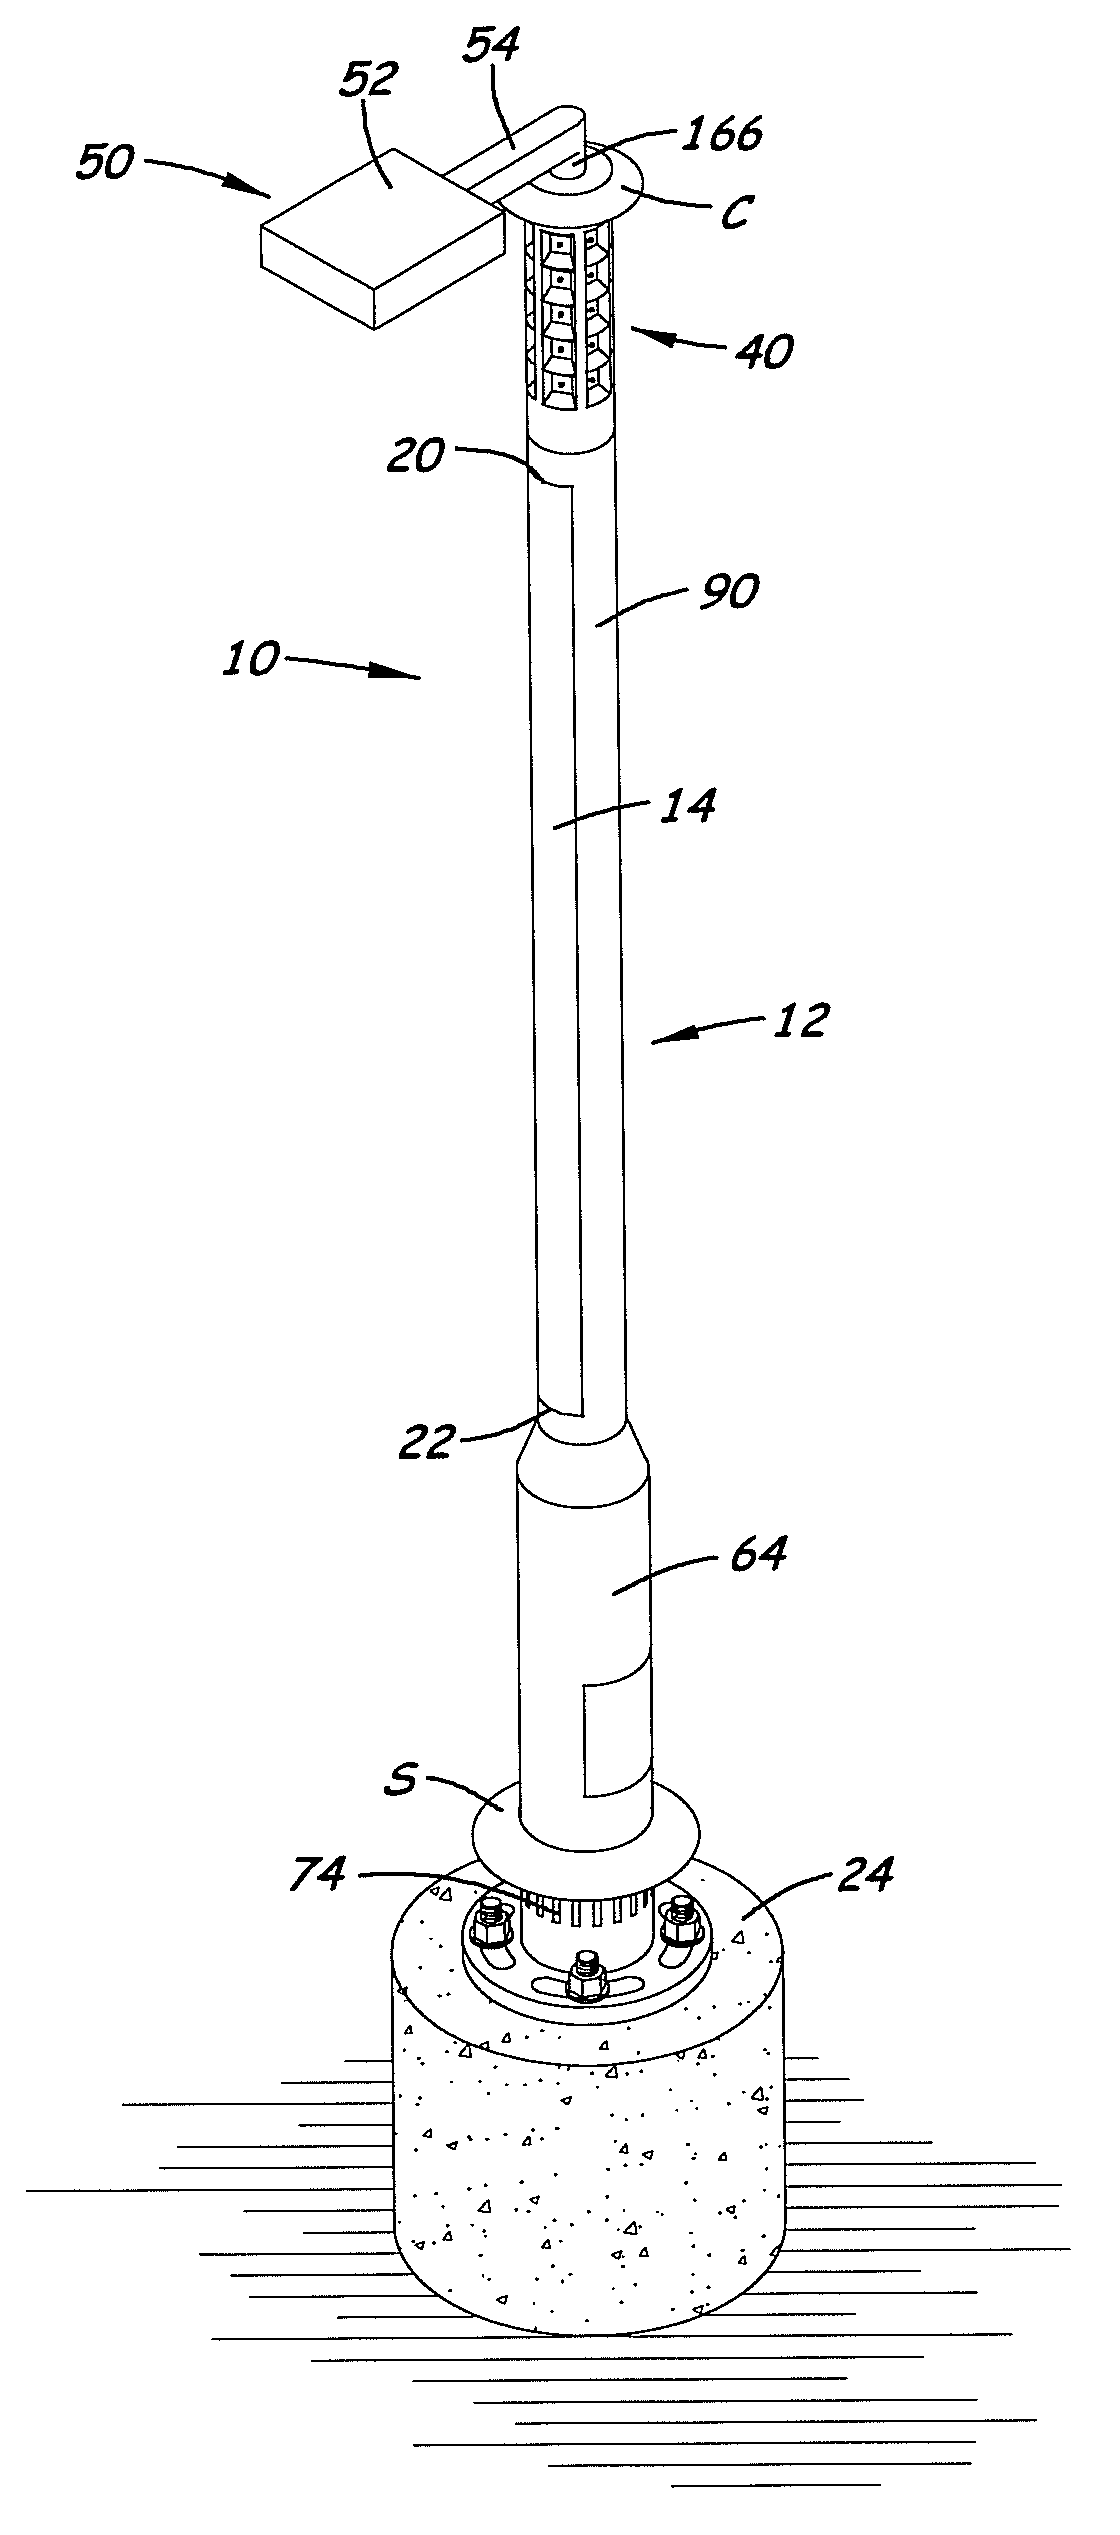 Patent Drawing  sc 1 st  Google & Patent US7731383 - Solar-powered light pole and LED light fixture ... azcodes.com